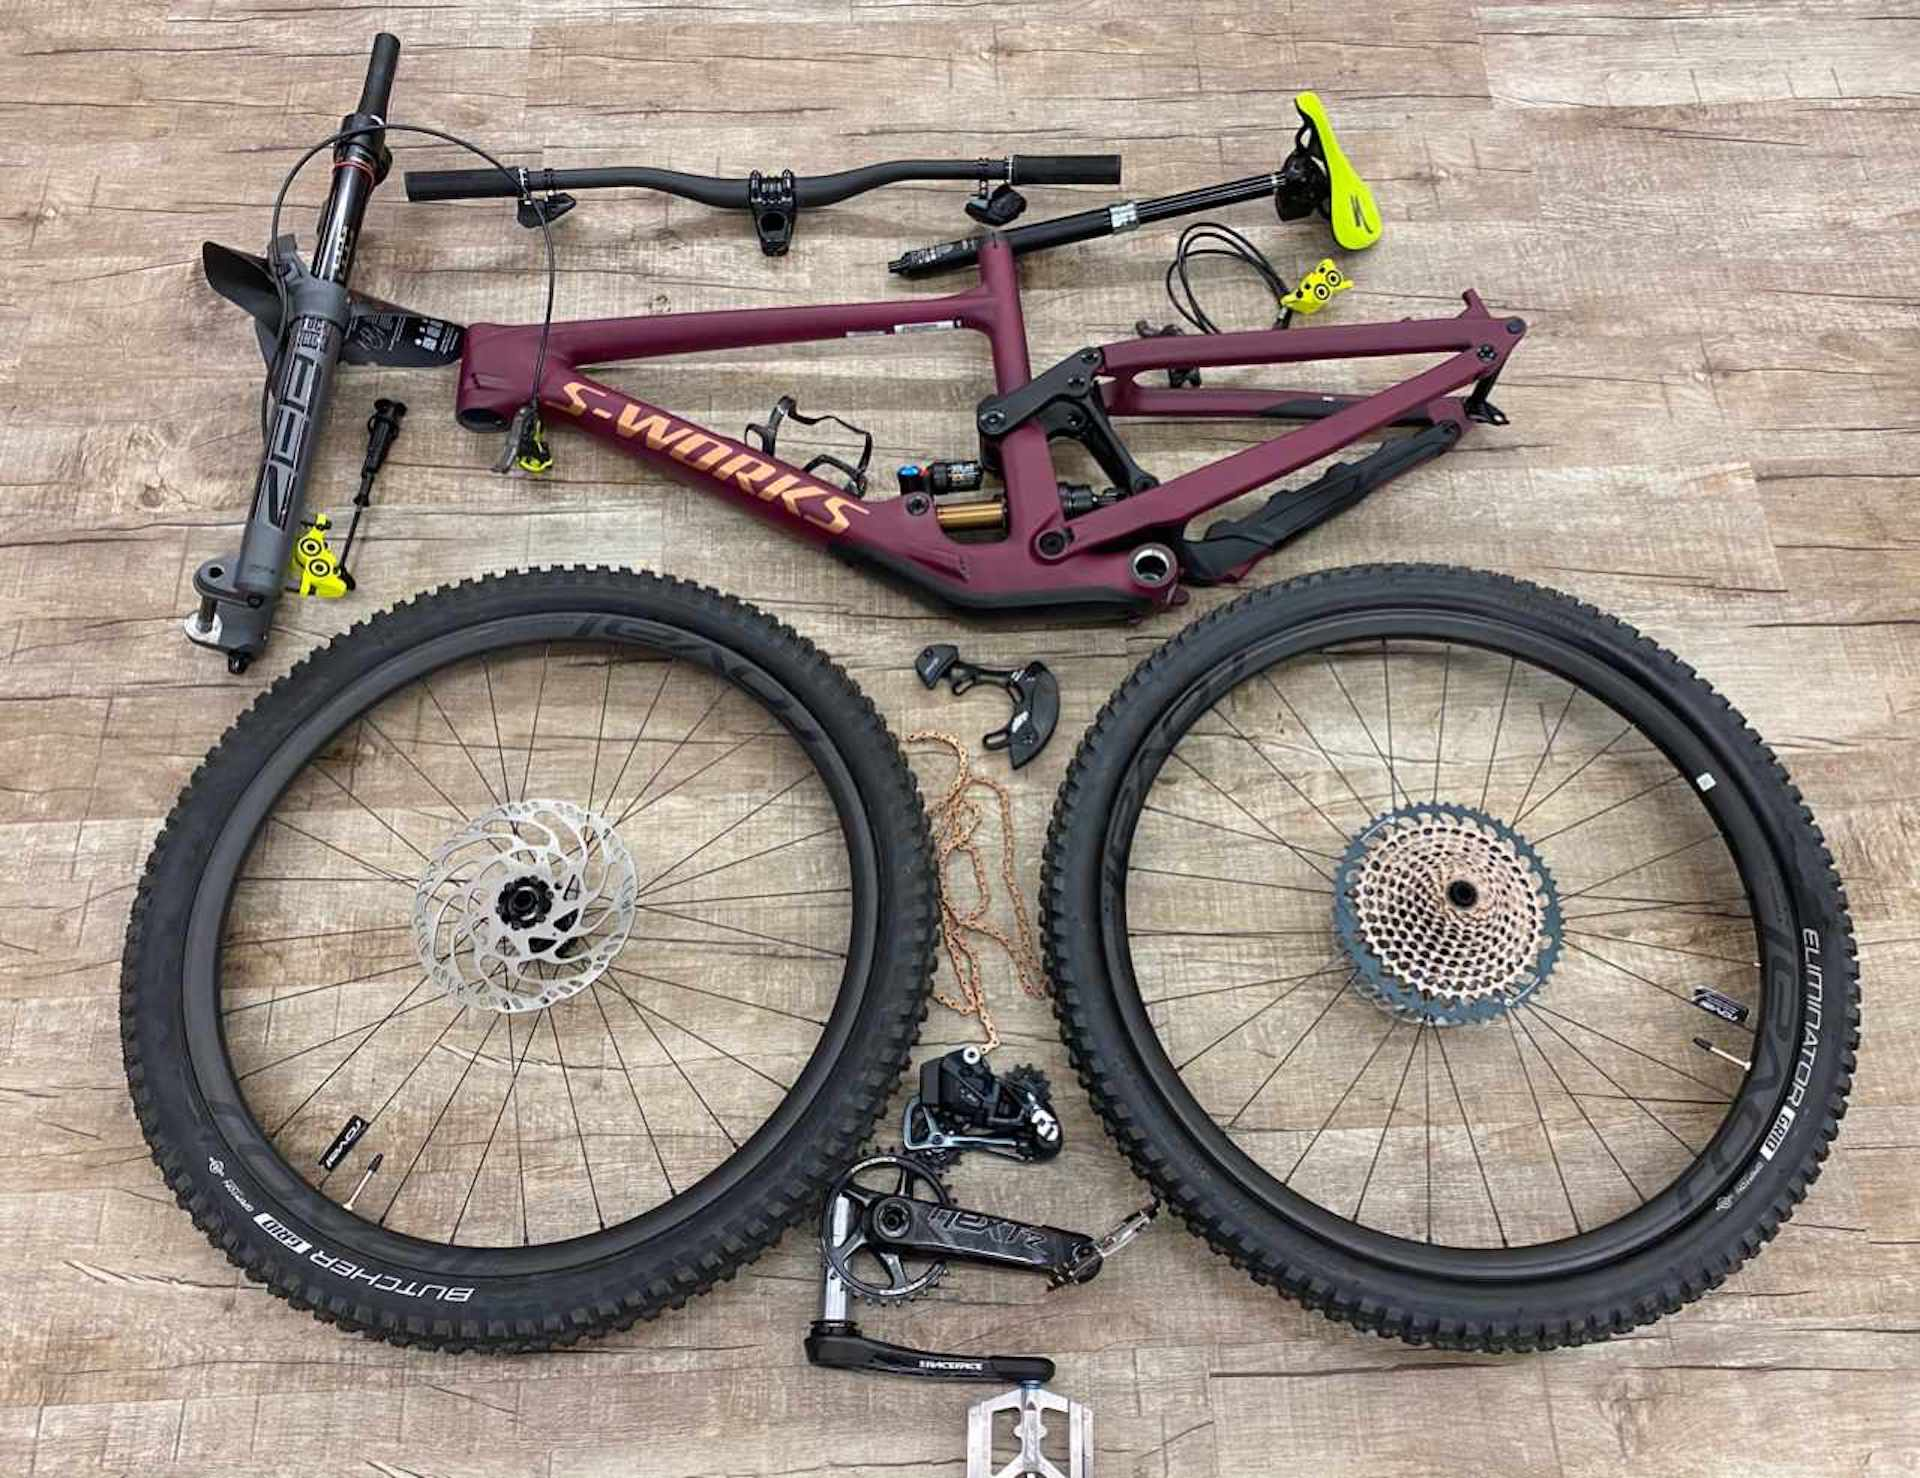 Andys-specialized-s-works-mtb-1